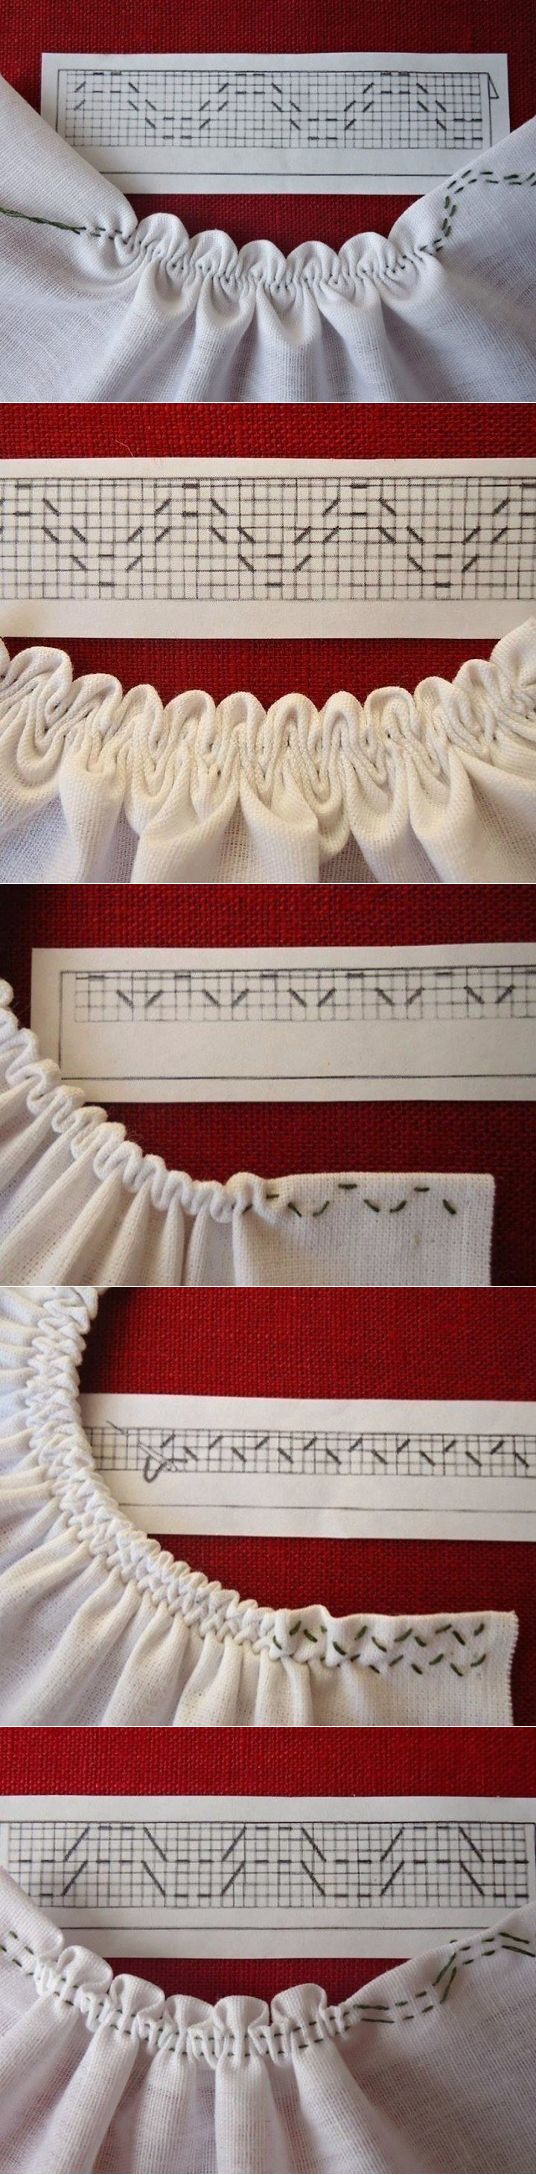 Best syning ideas on pinterest sewing patterns sewing projects